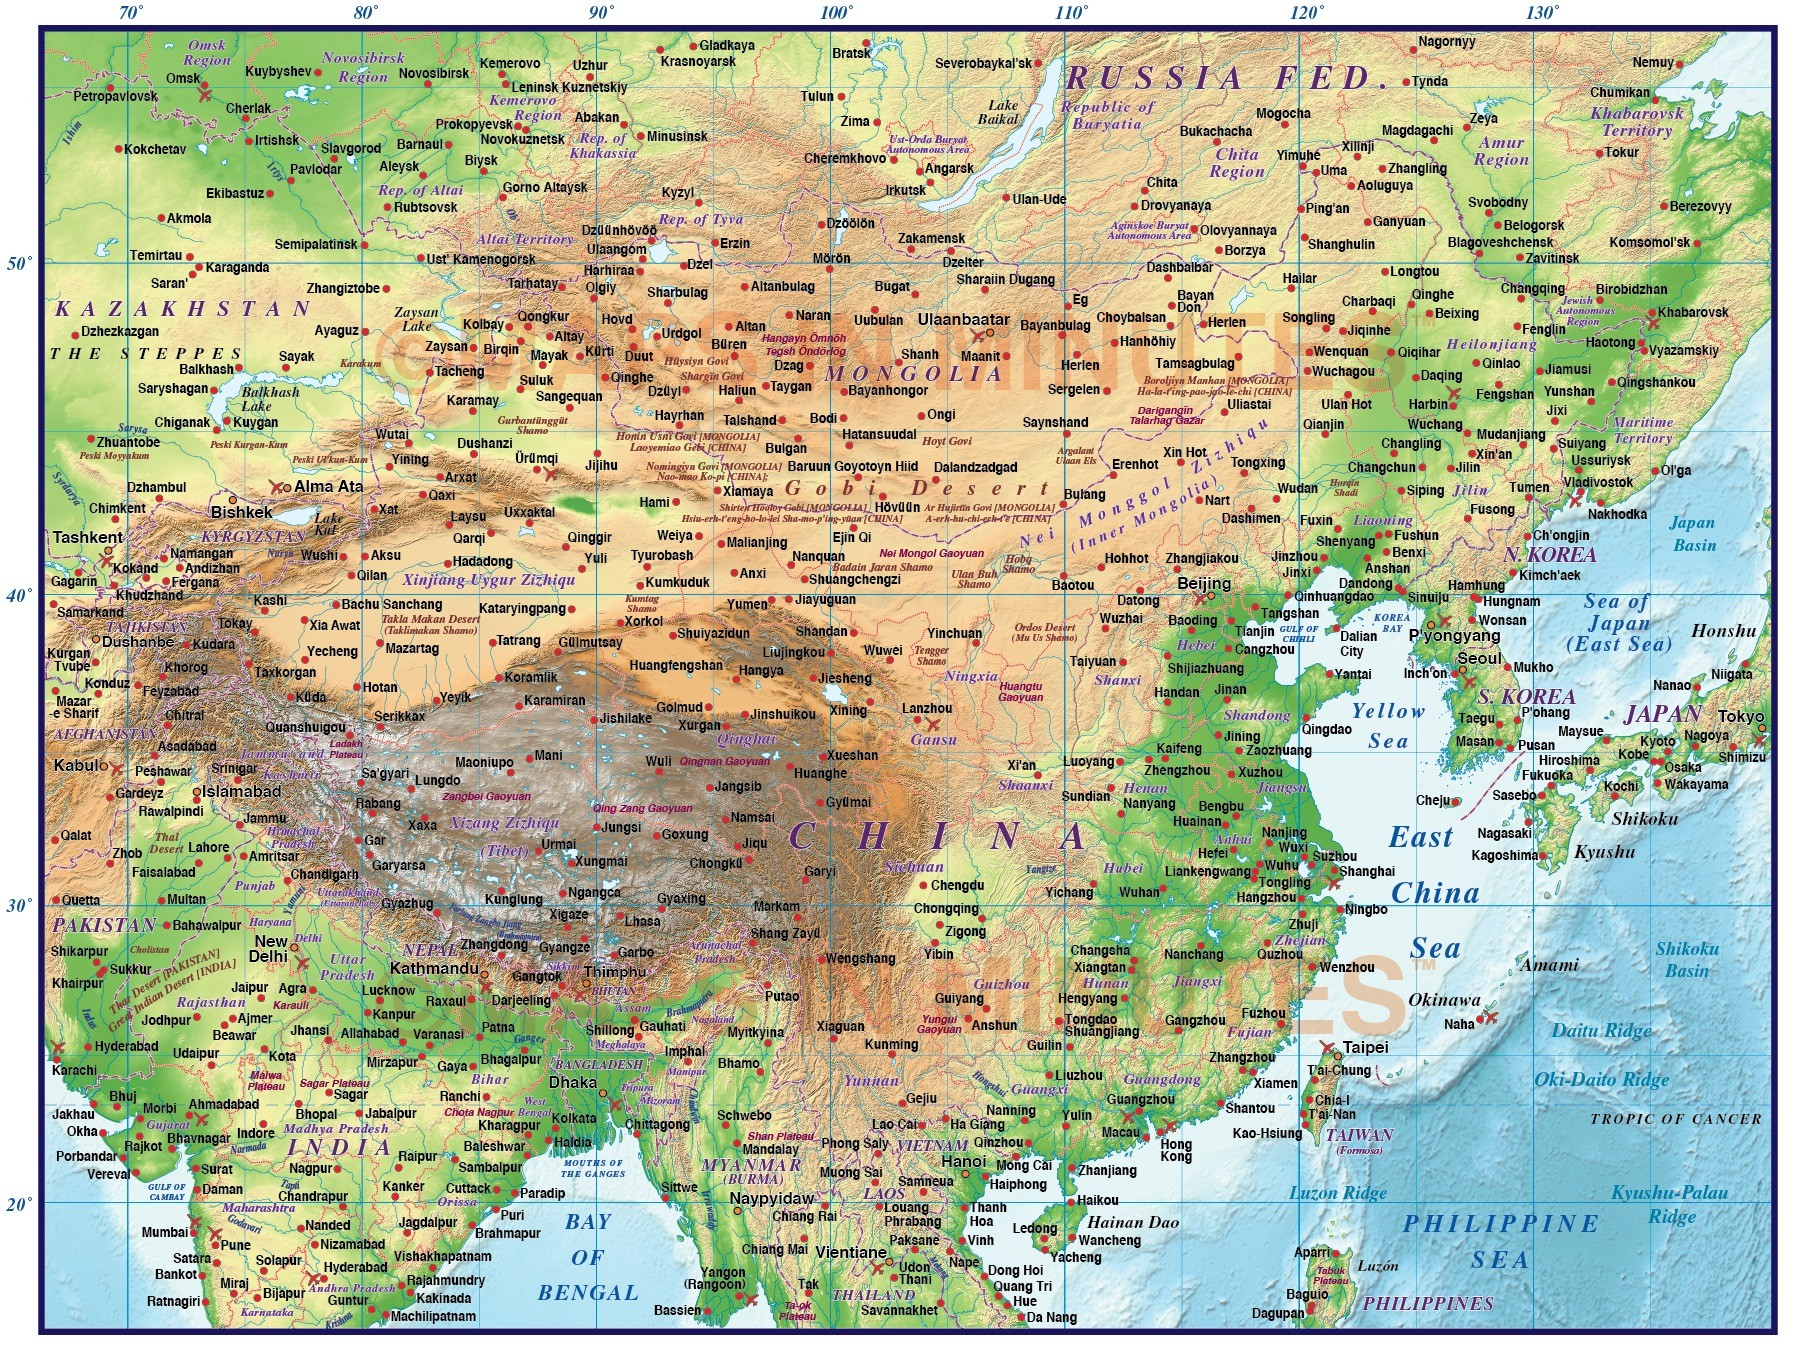 Digital Vector China First Level Political Country Map @10,000,000 Scale In Illustrator Layered